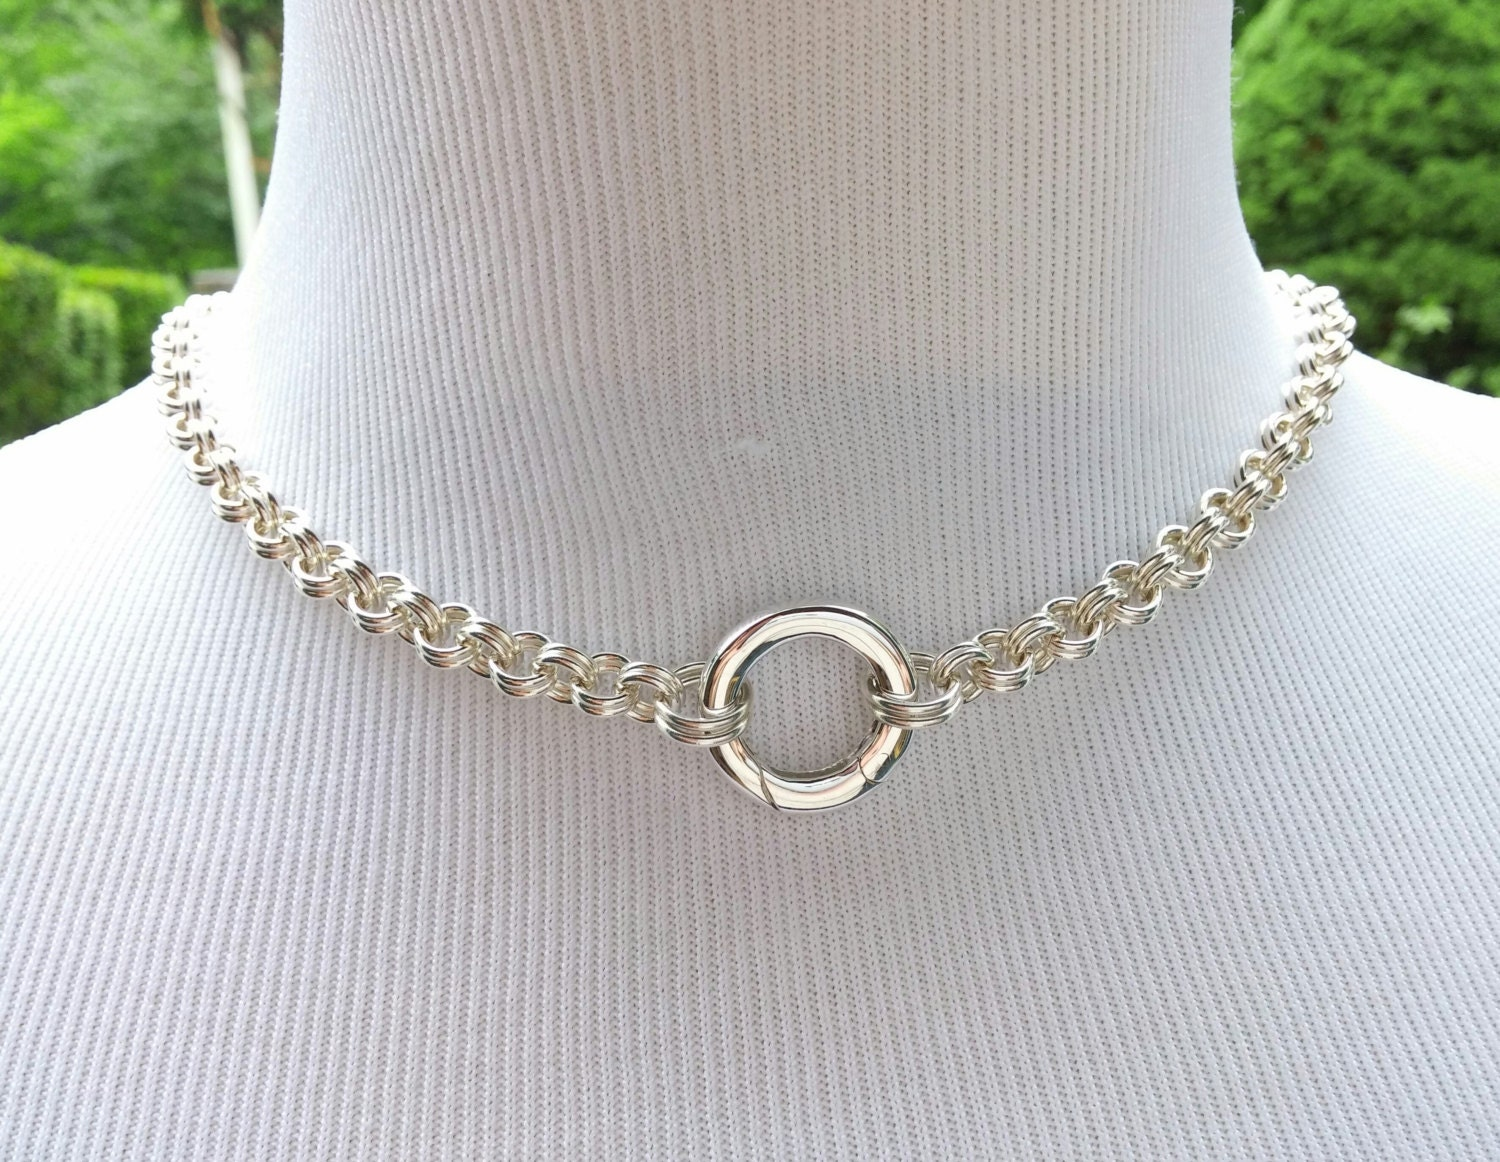 925 Sterling Silver Discreet Bdsm Slave Collar Chainmaille